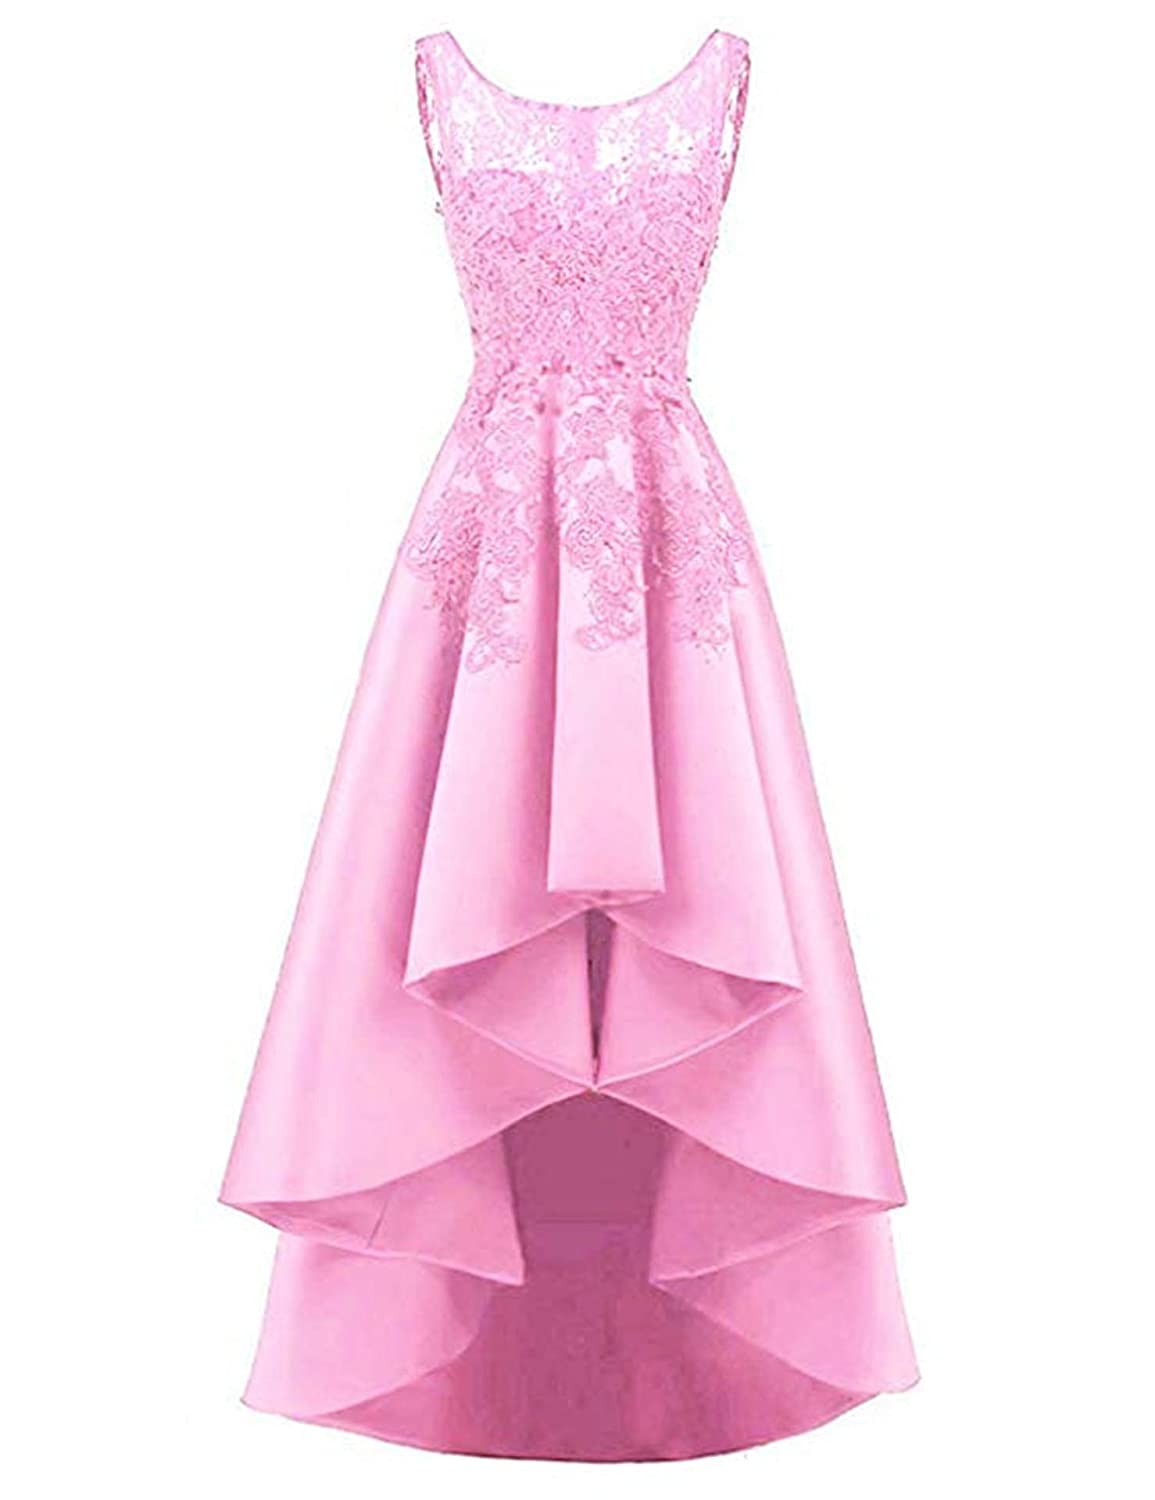 bluesh Pink QiJunGe Women's High Low Prom Dress Lace Satin A Line Evening Formal Gowns